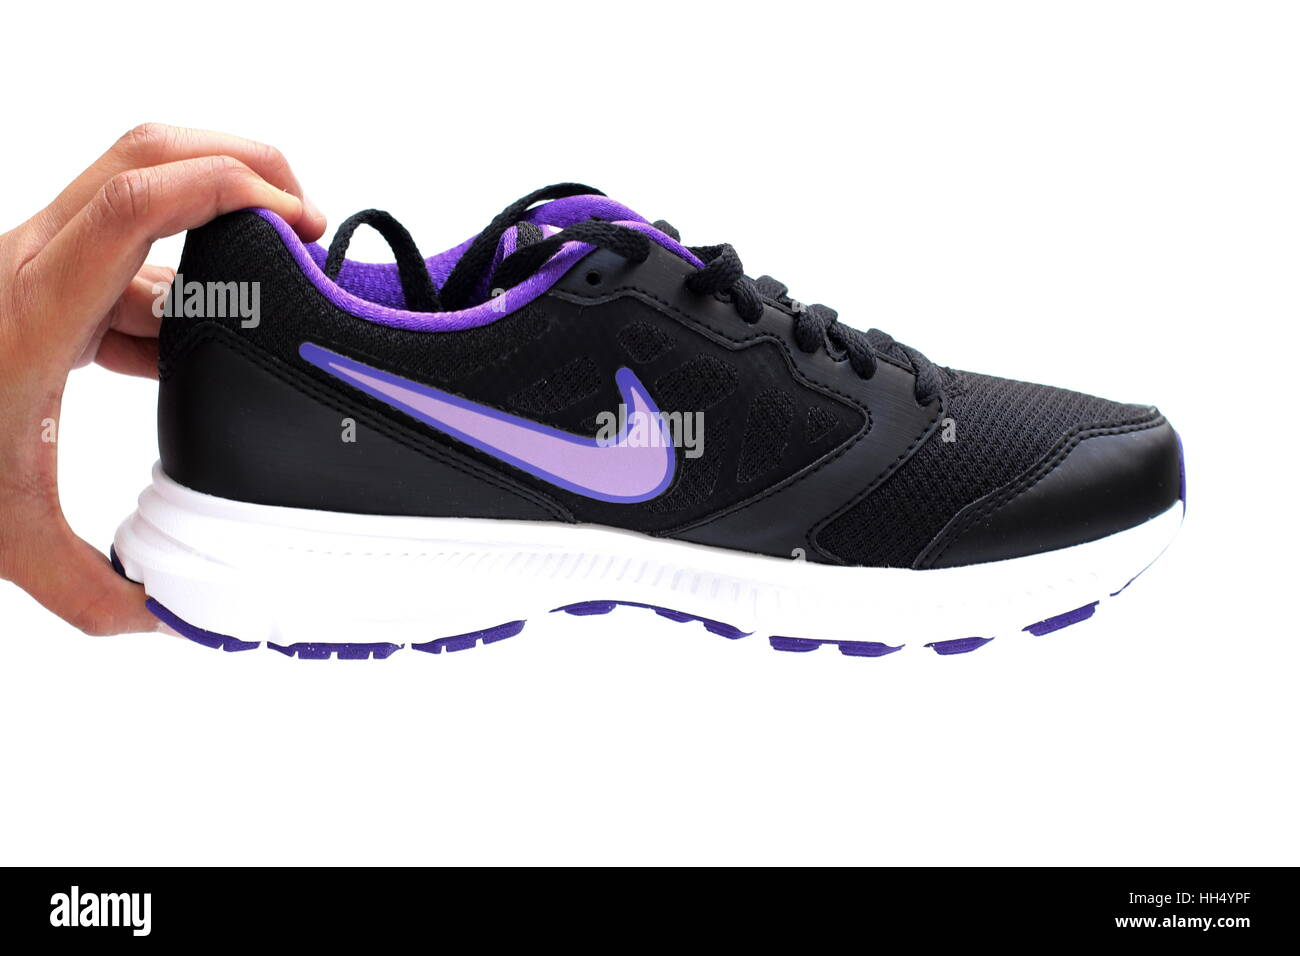 24497a45bc17 Close up of hand holding Nike shoes isolated against white background